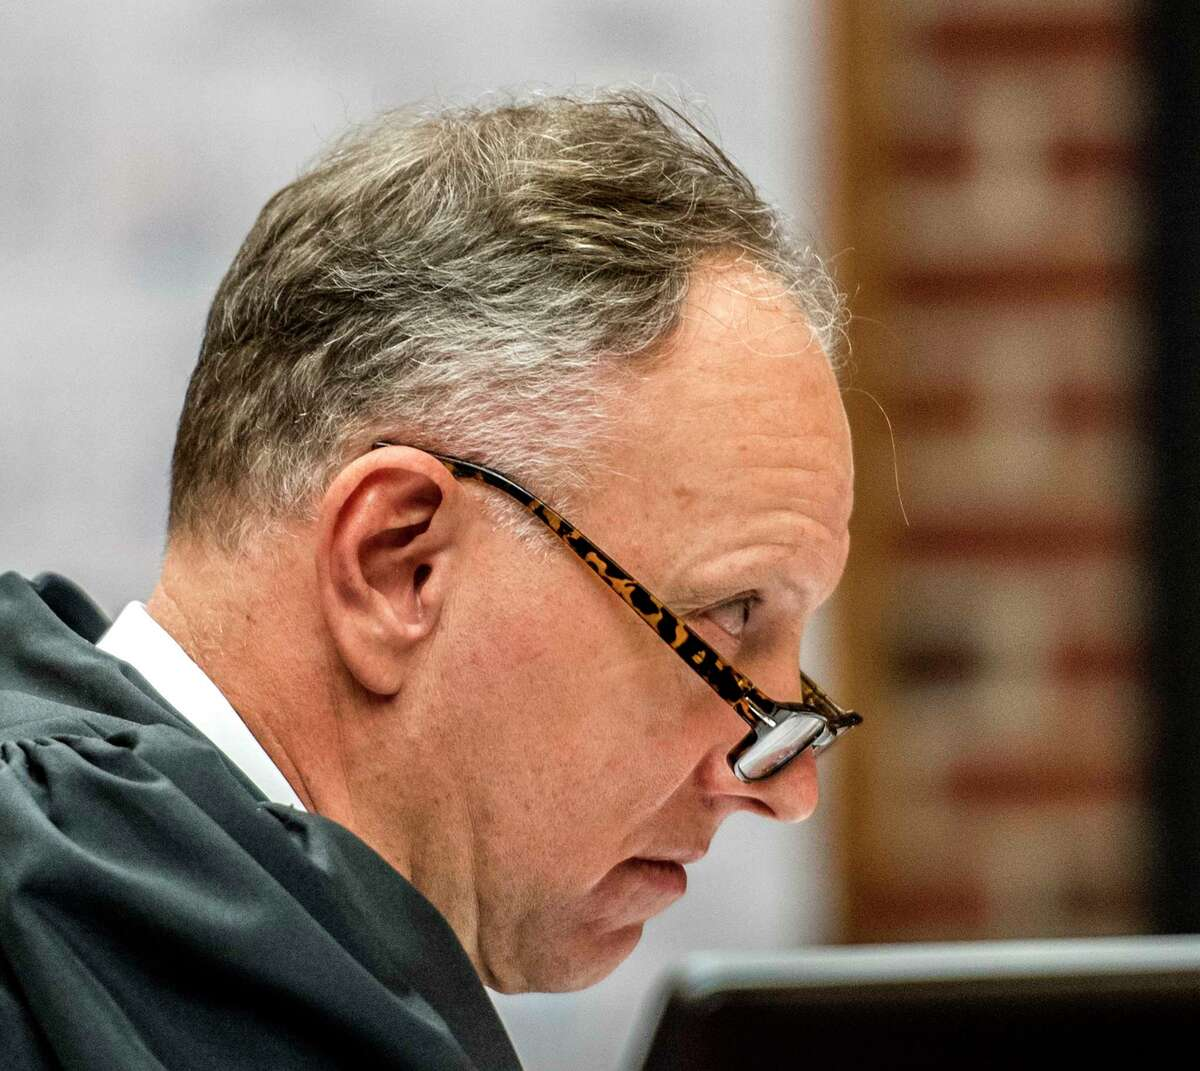 Saratoga County Court Judge James Murphy presides over the sentencing of former Stillwater Mayor Ricky Nelson Tuesday June 19, 2018 in Ballston Spa, N.Y. (Skip Dickstein/Times Union)